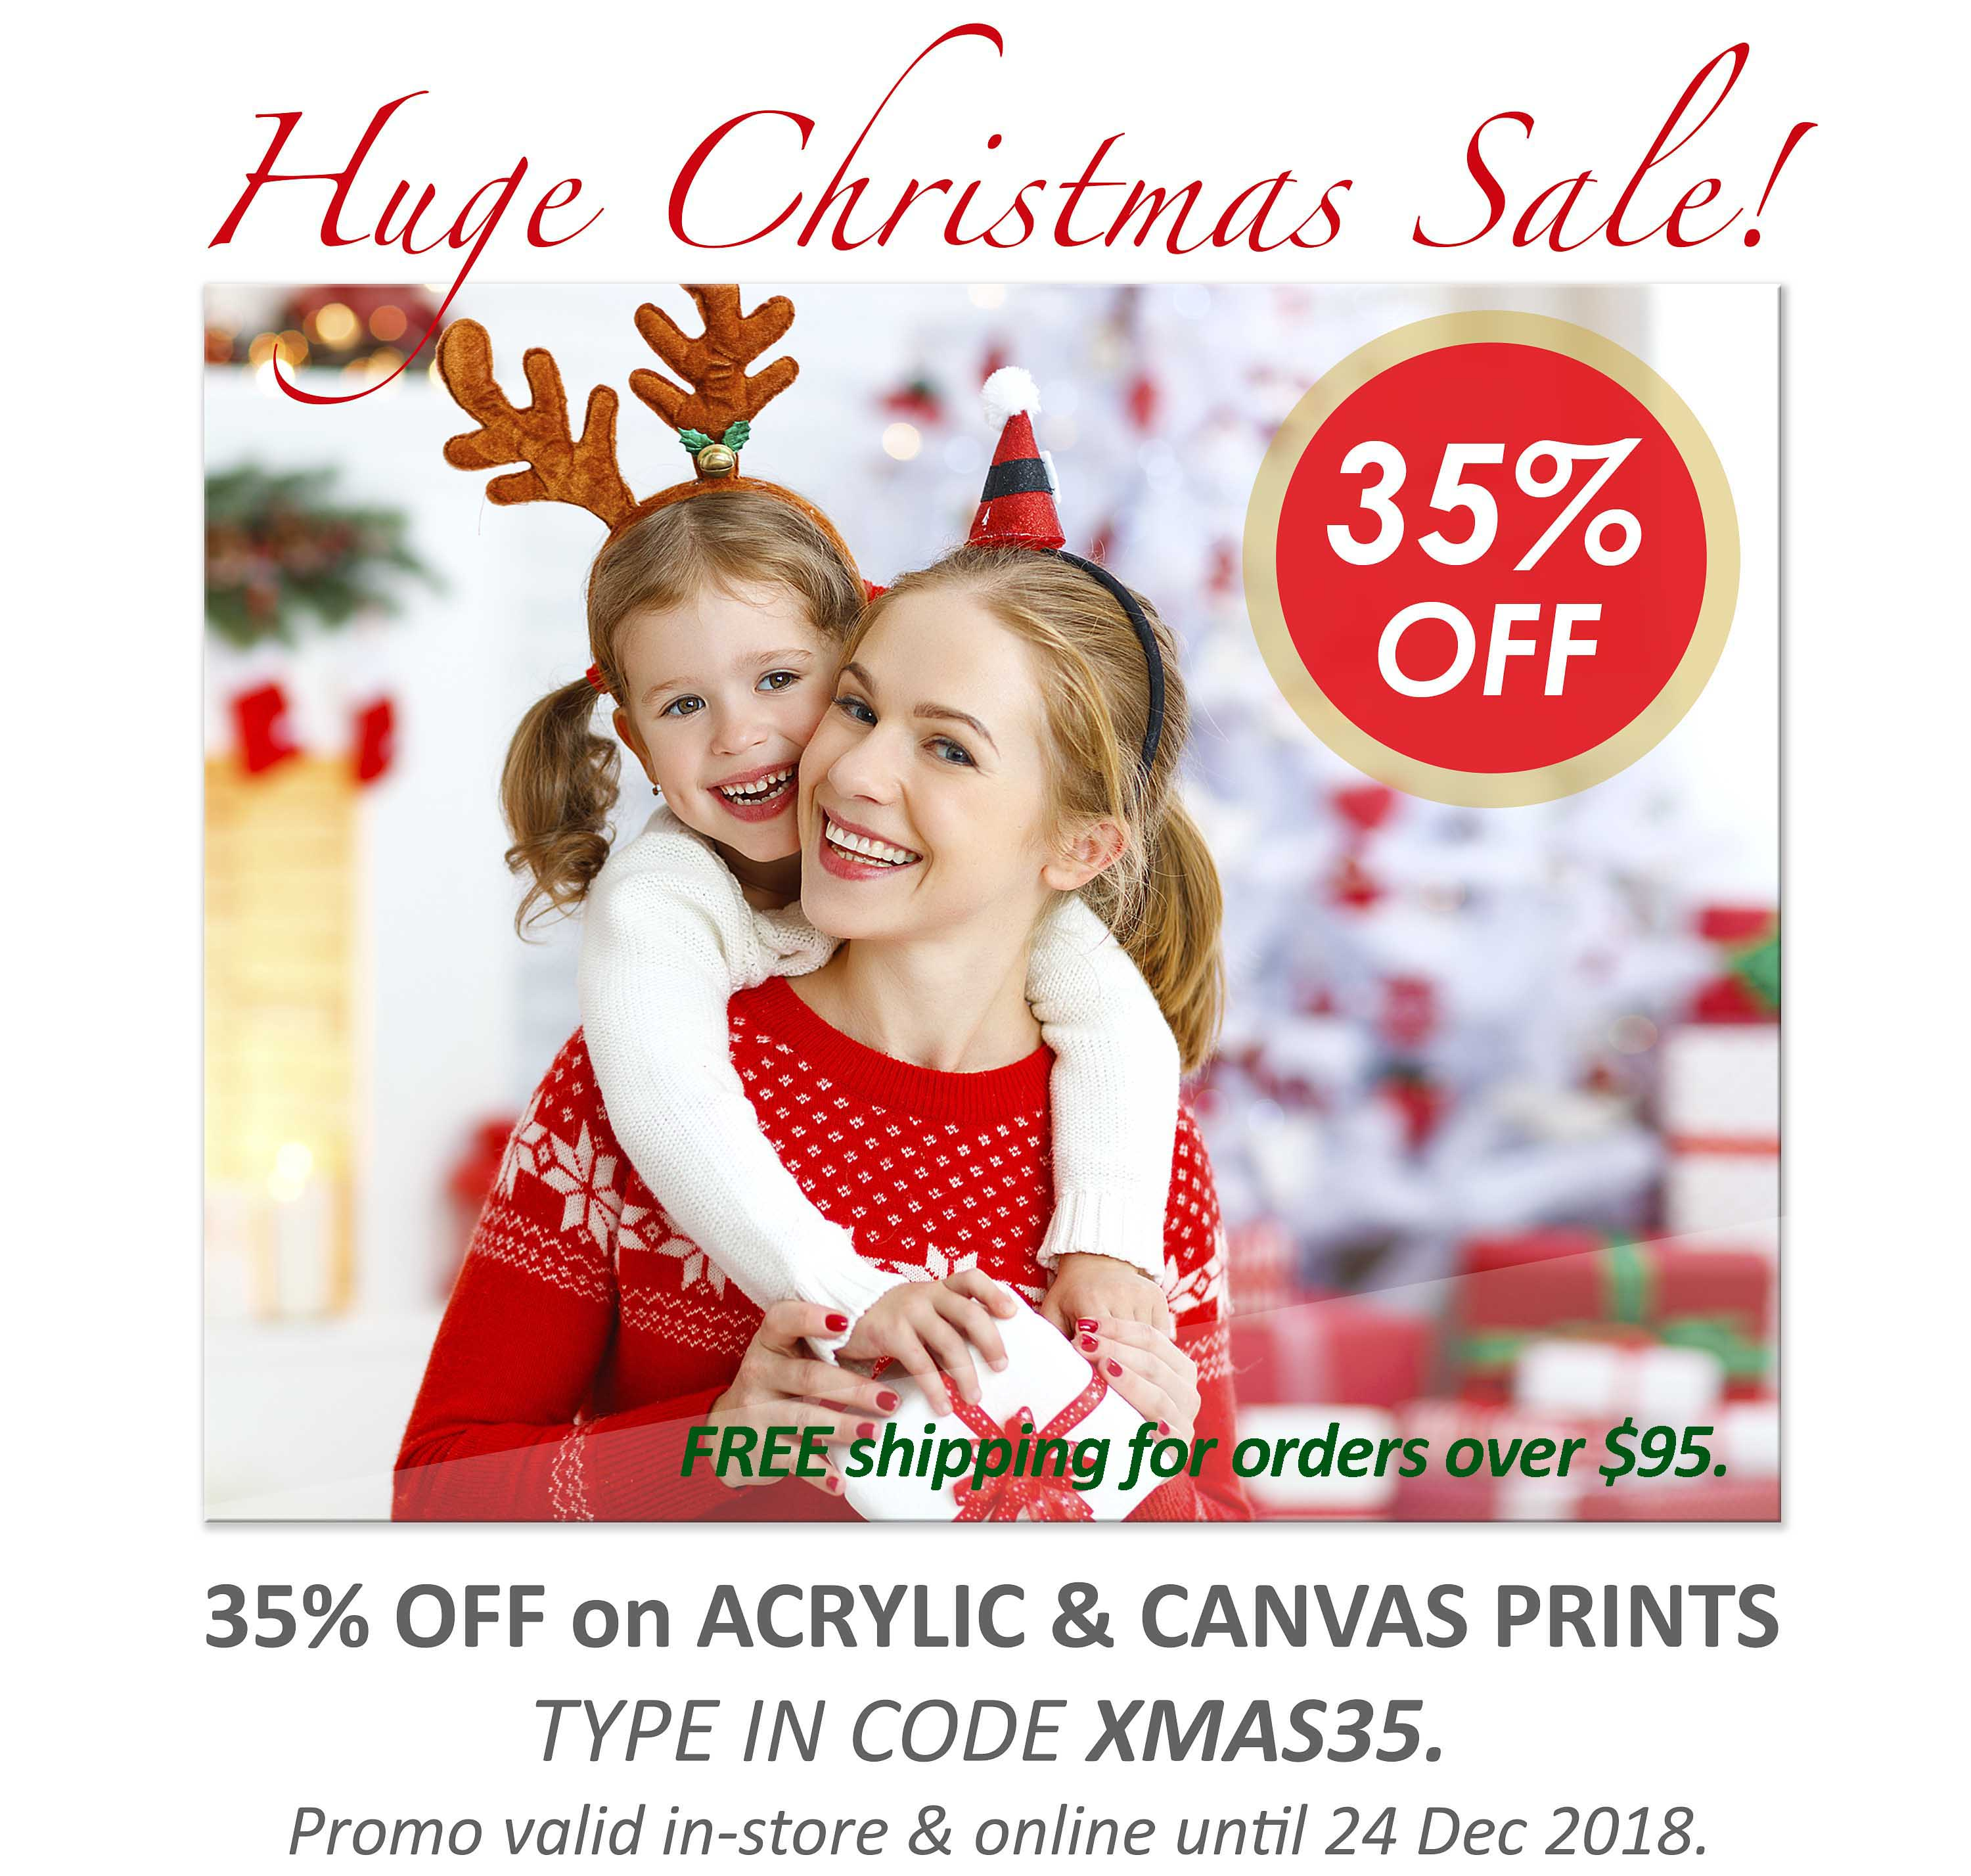 Deluxe Art Xmas Sale 35 OFF Acrylic Canvas Print 24Nov FreeShipping